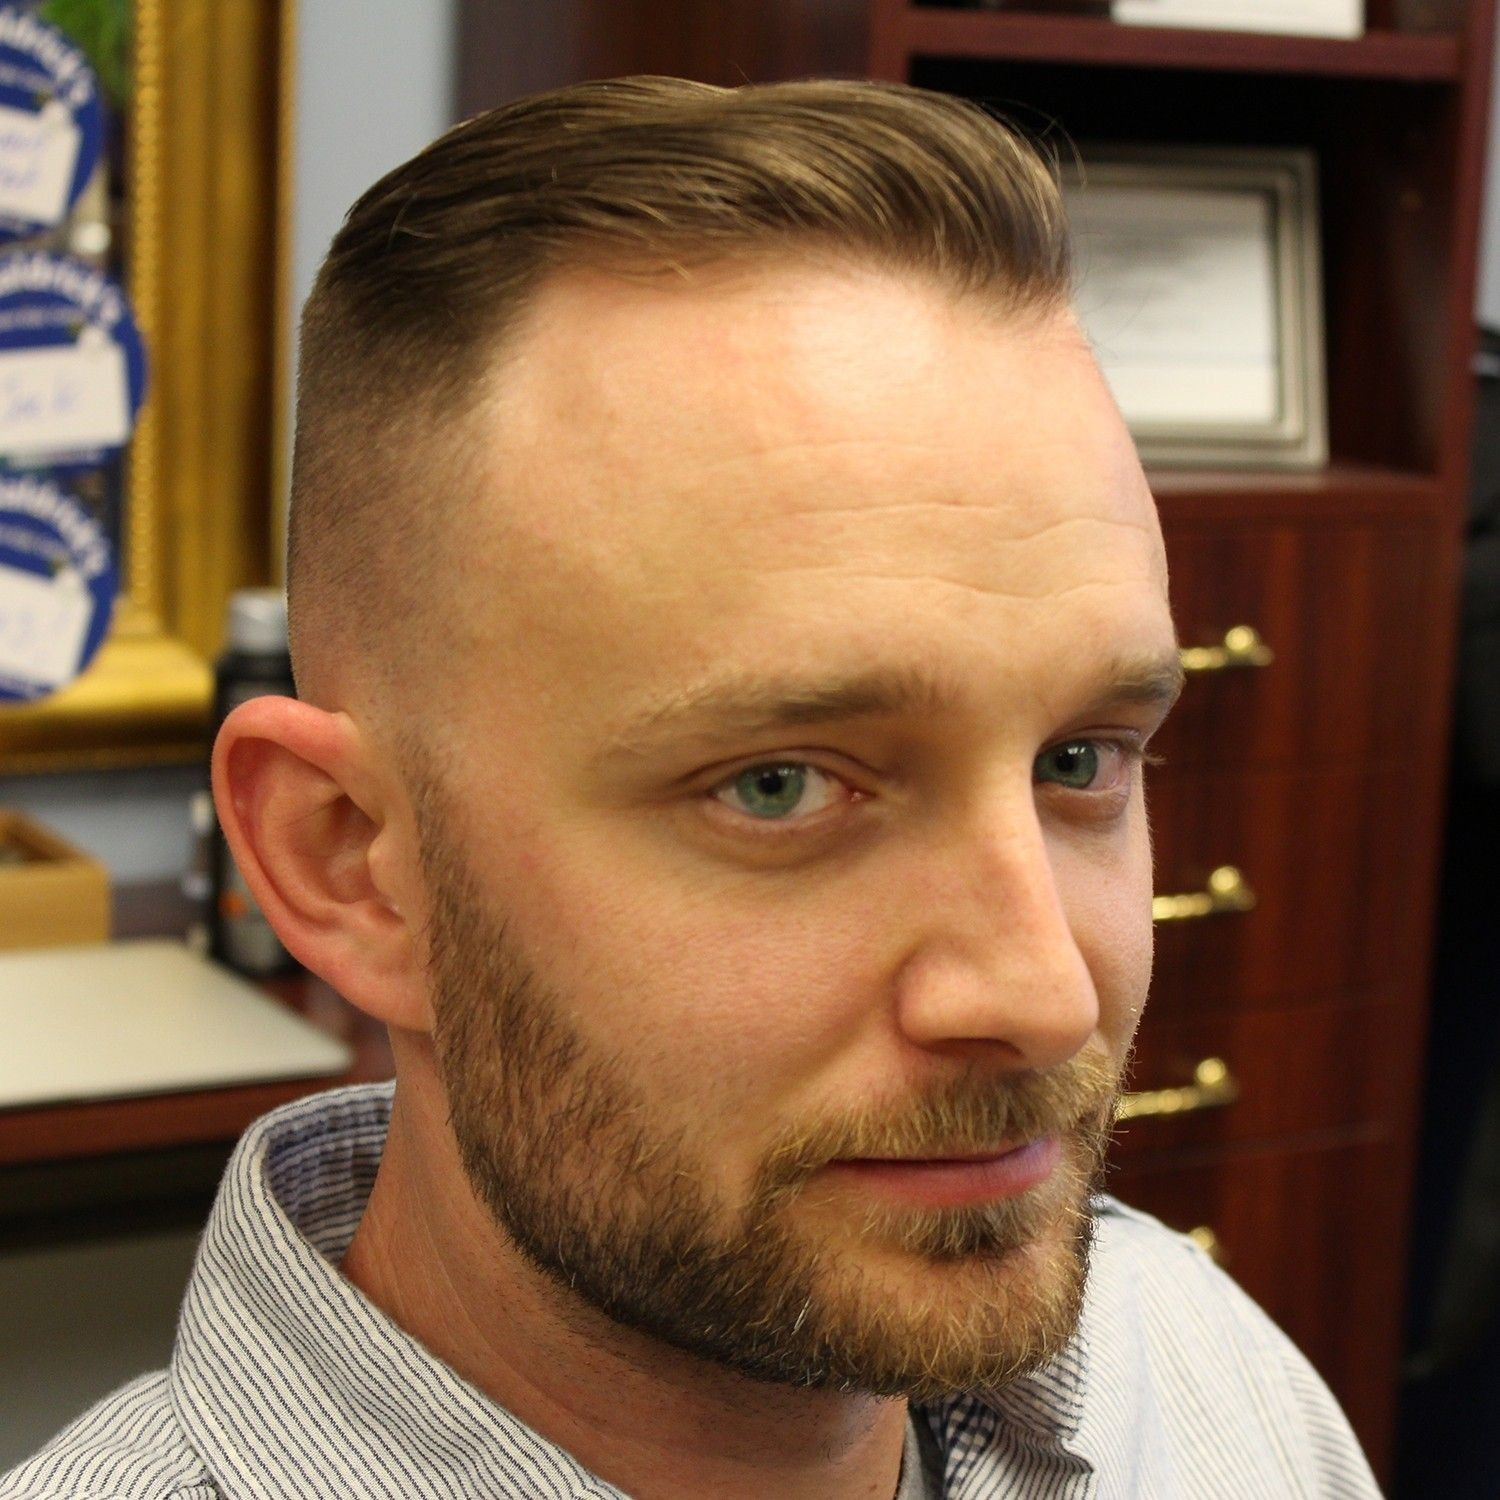 Haircut for thin hair men hairstyle for m shaped baldness  best hair style men  pinterest